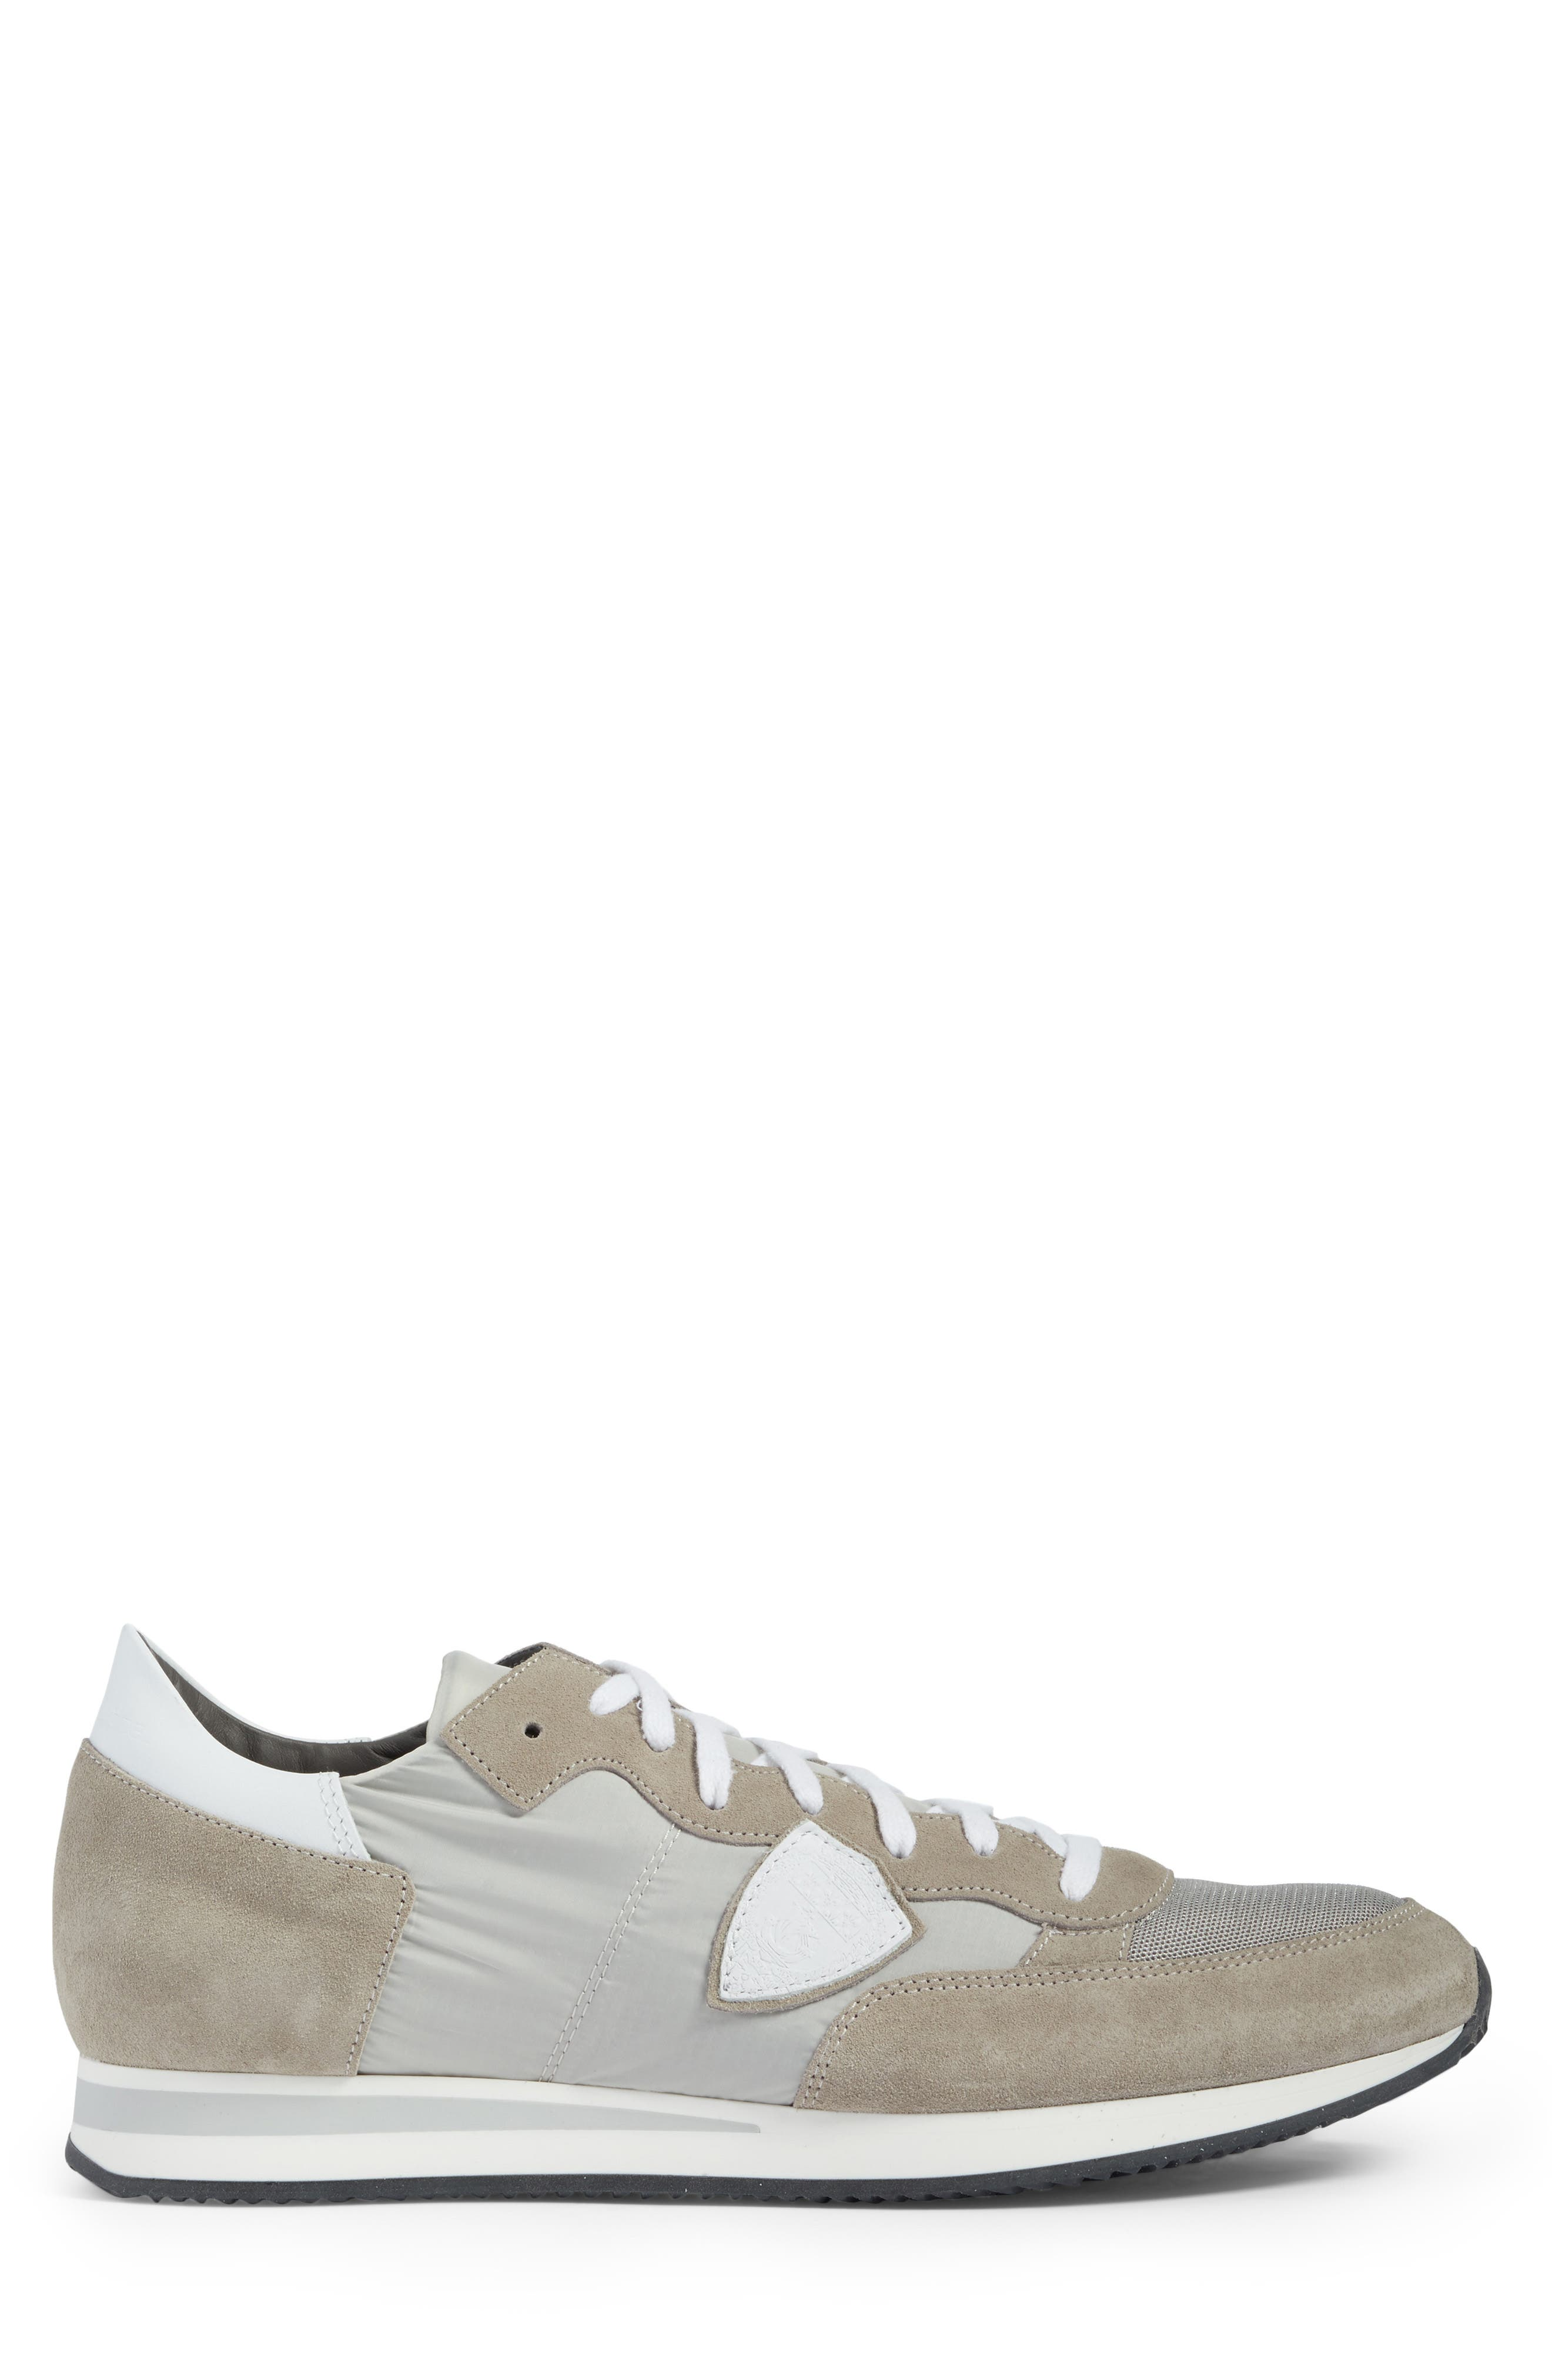 Tropez Low Top Sneaker,                             Alternate thumbnail 3, color,                             Grey/ White